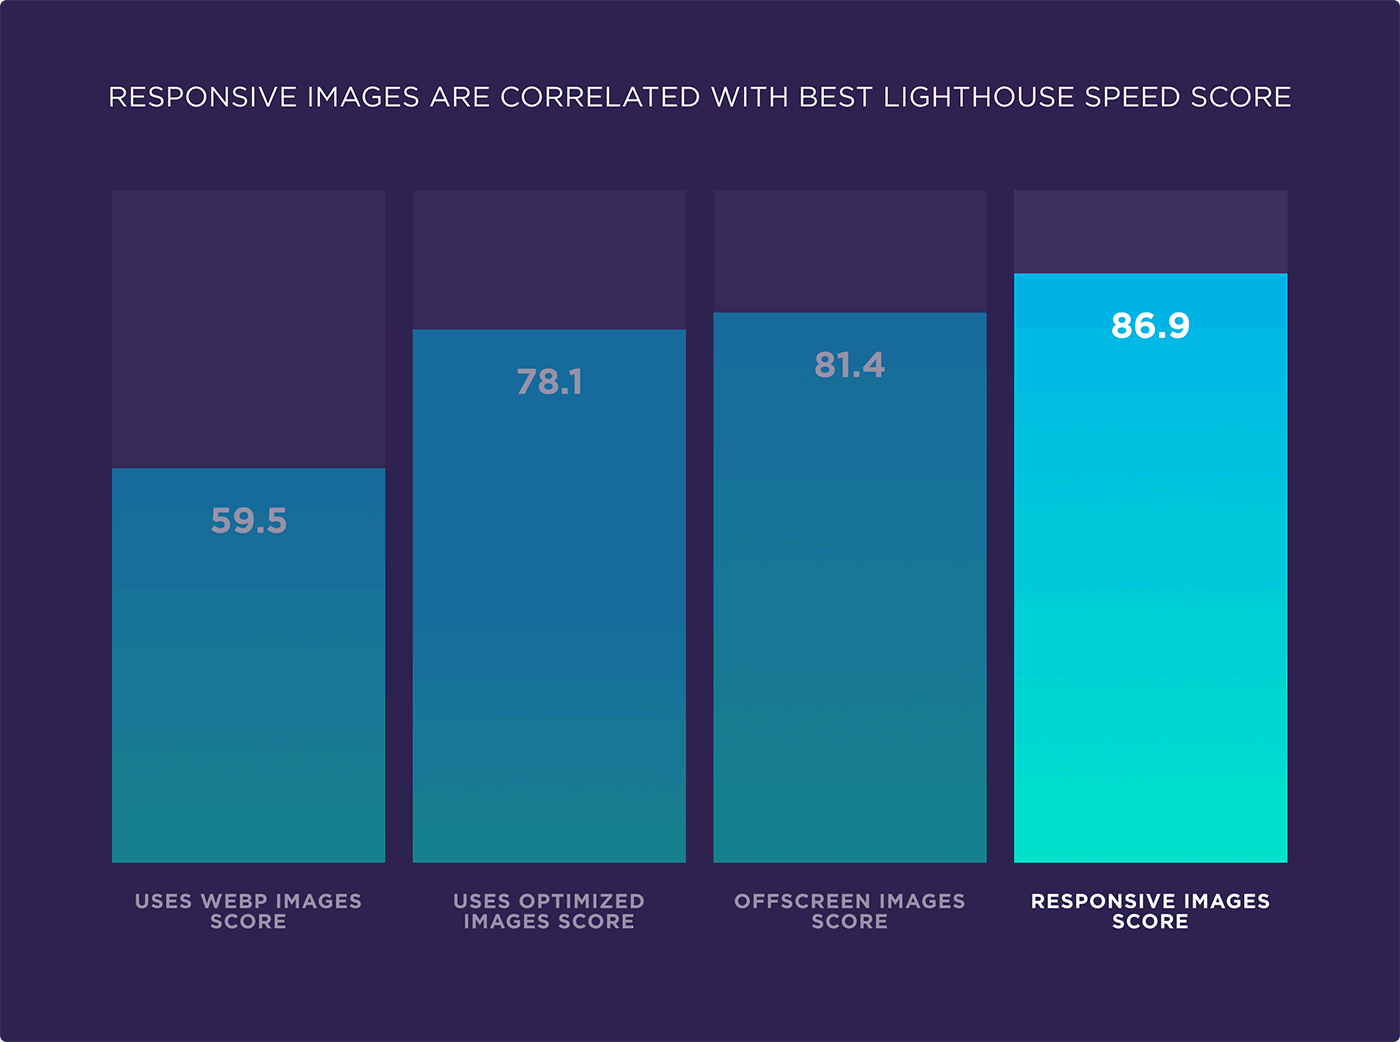 Responsive images are correlated with best lighthouse speed score